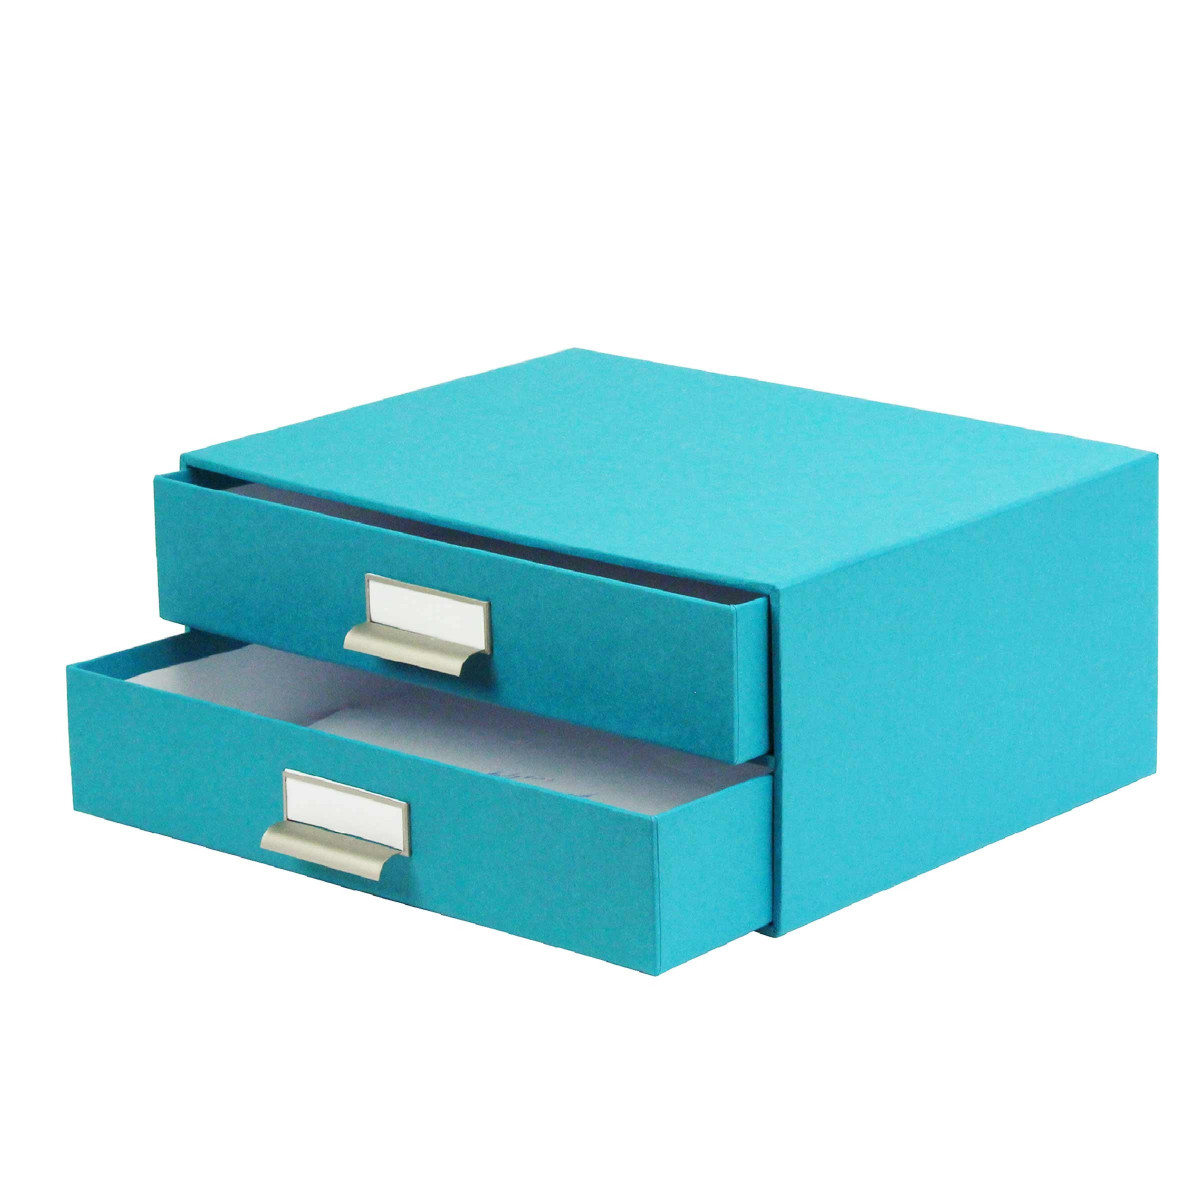 bo te carton turquoise 2 tiroirs archivage. Black Bedroom Furniture Sets. Home Design Ideas